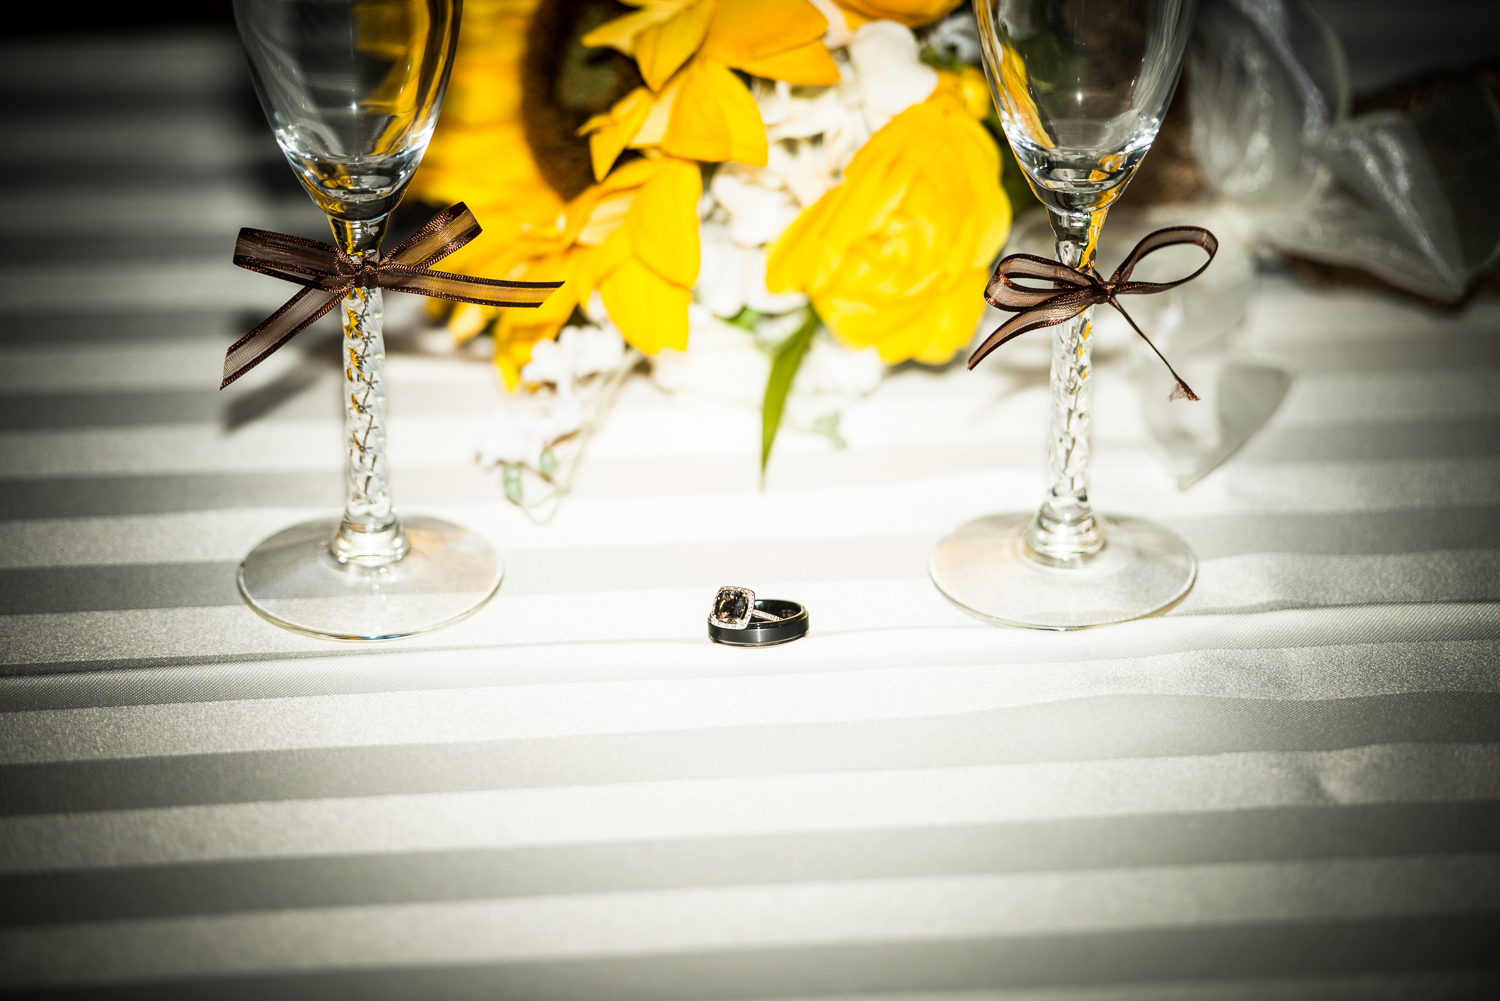 Hugo_and_Giselle_Wedding-0624-n.jpg